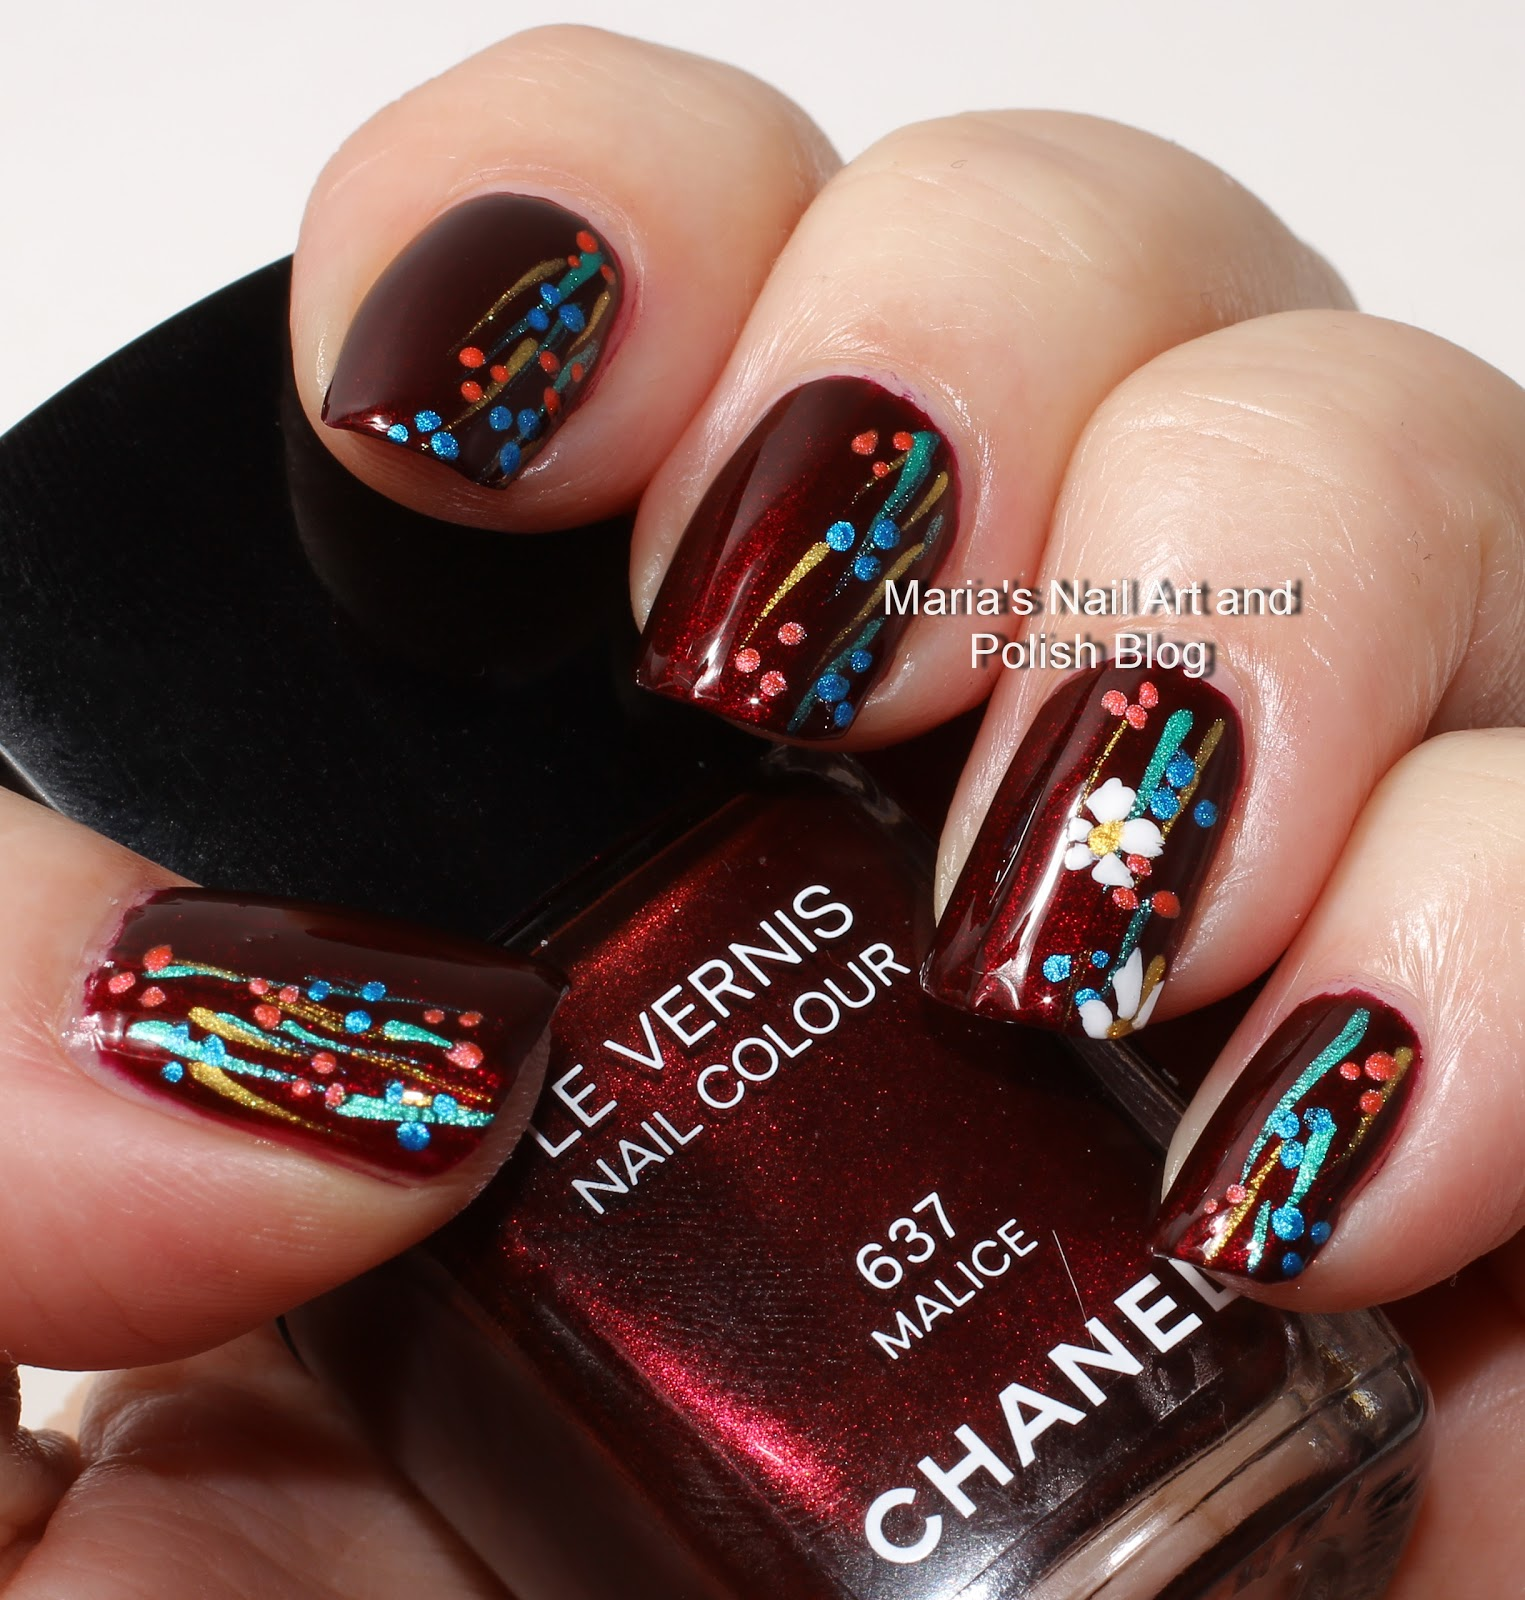 Marias Nail Art And Polish Blog Flushed With Stripes And: Marias Nail Art And Polish Blog: Malice Nail Art